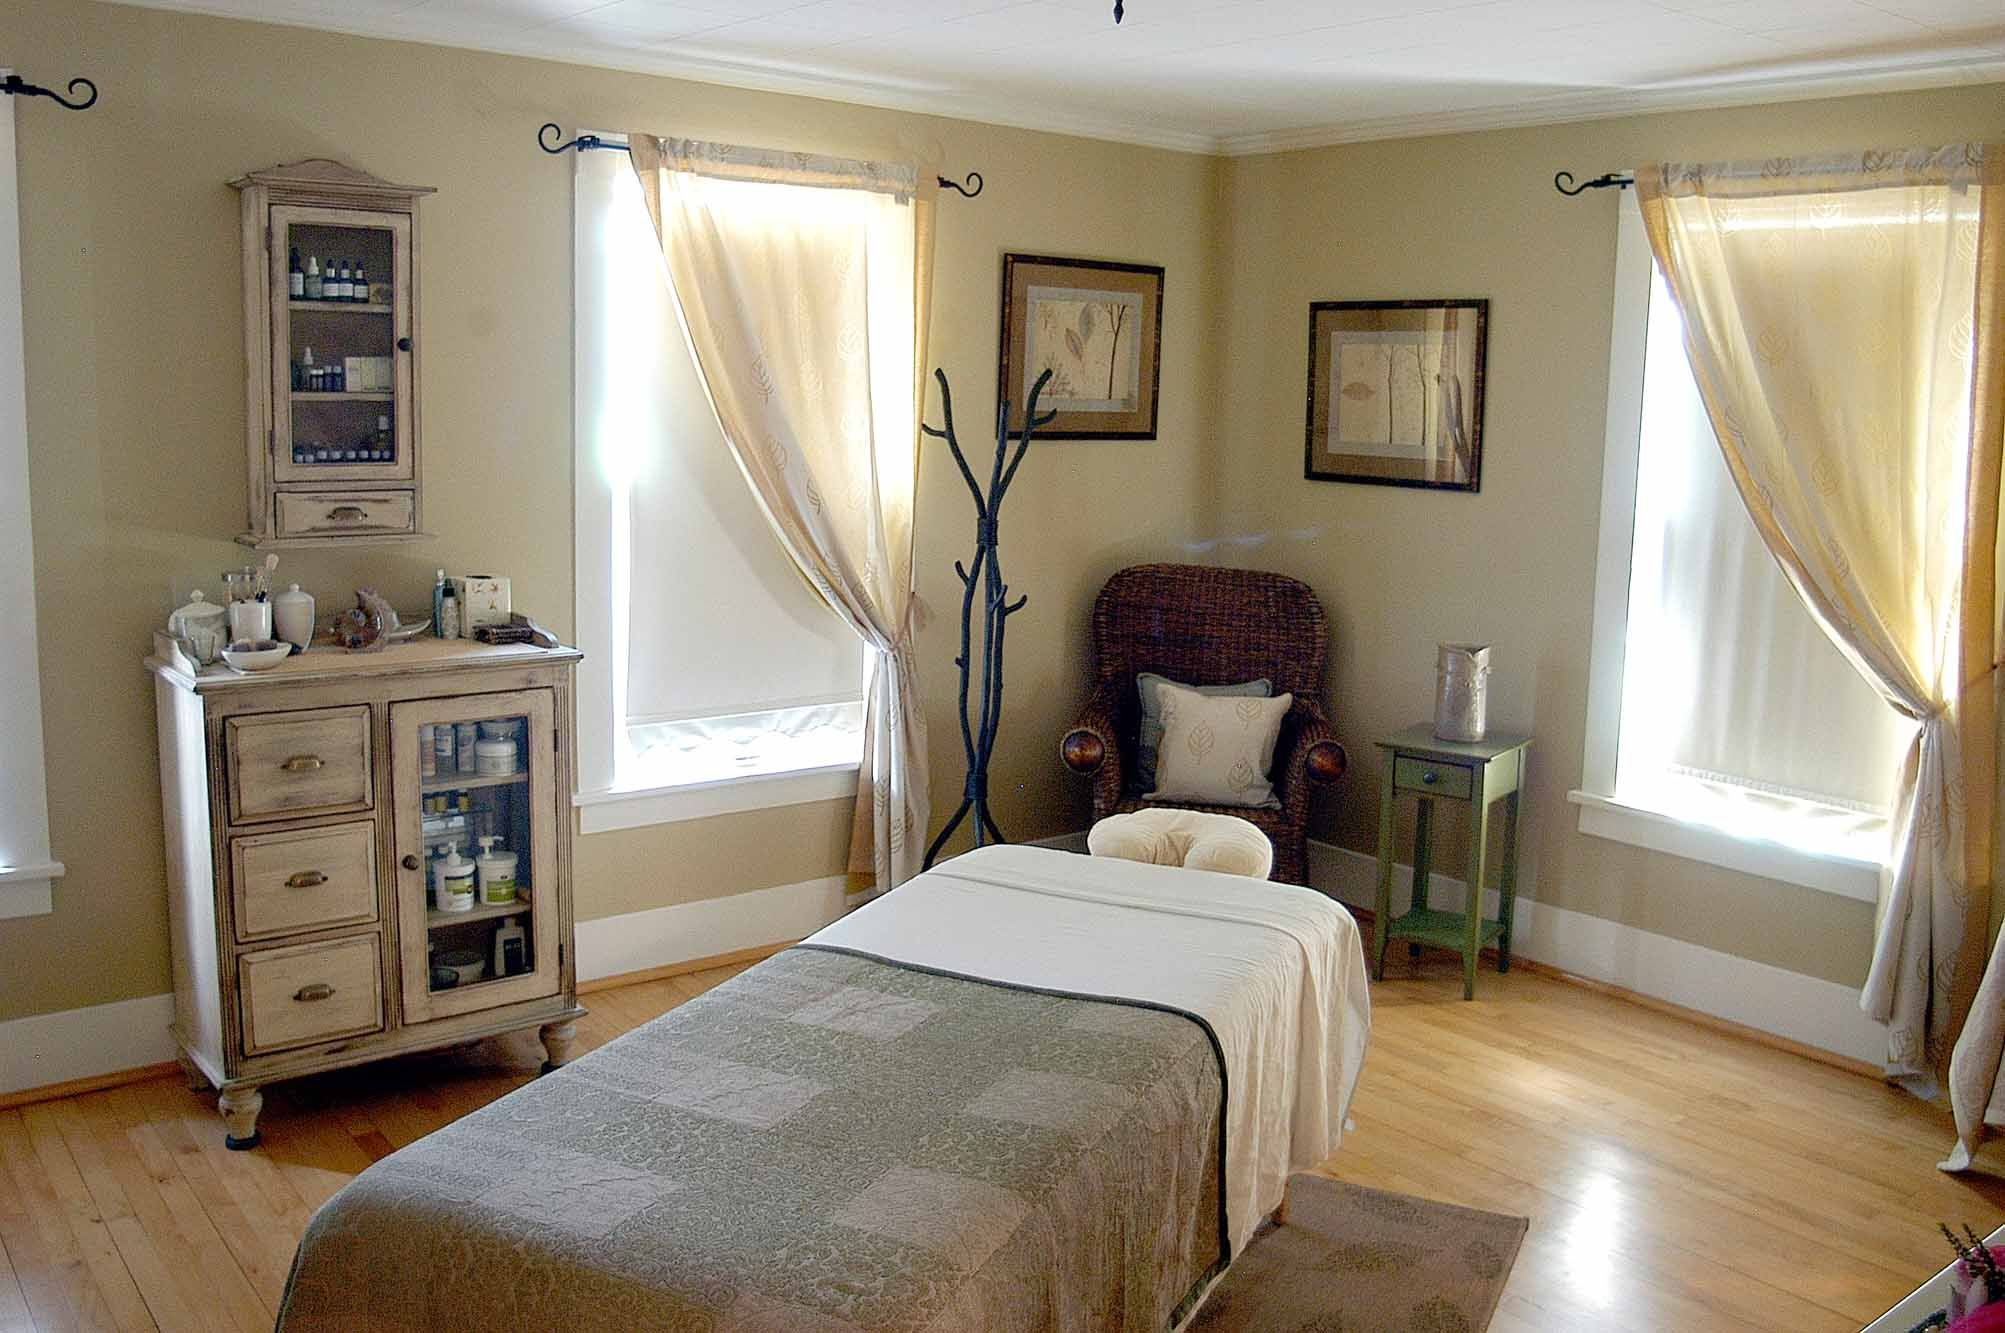 Spa waiting room decor - 73 Best Massage Studio Decor Images On Pinterest Massage Room Massage Therapy And Massage Therapy Rooms